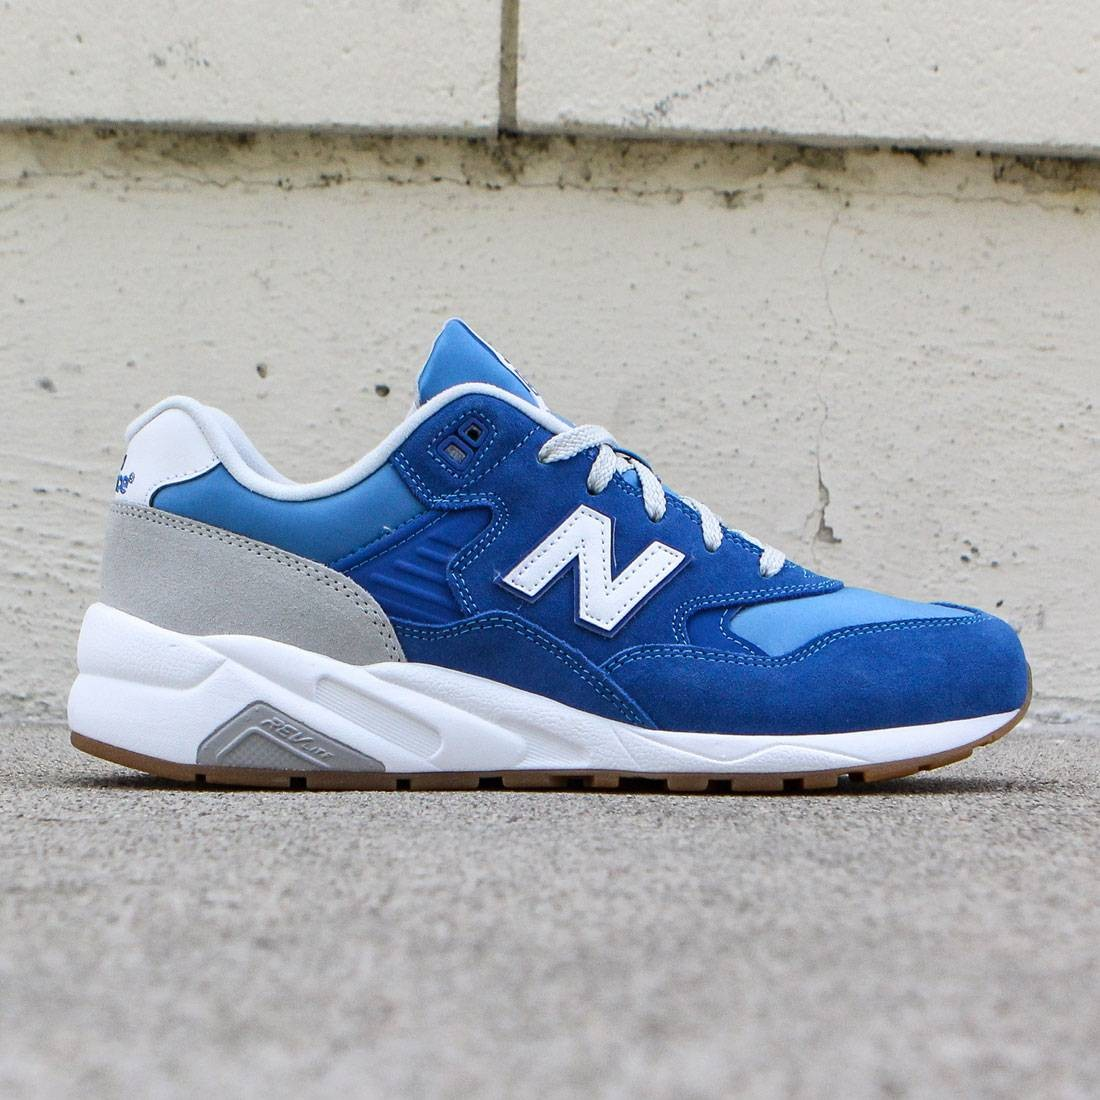 450f50de4db5a7 New Balance Men 580 Elite Edition REVlite MRT580MP blue white